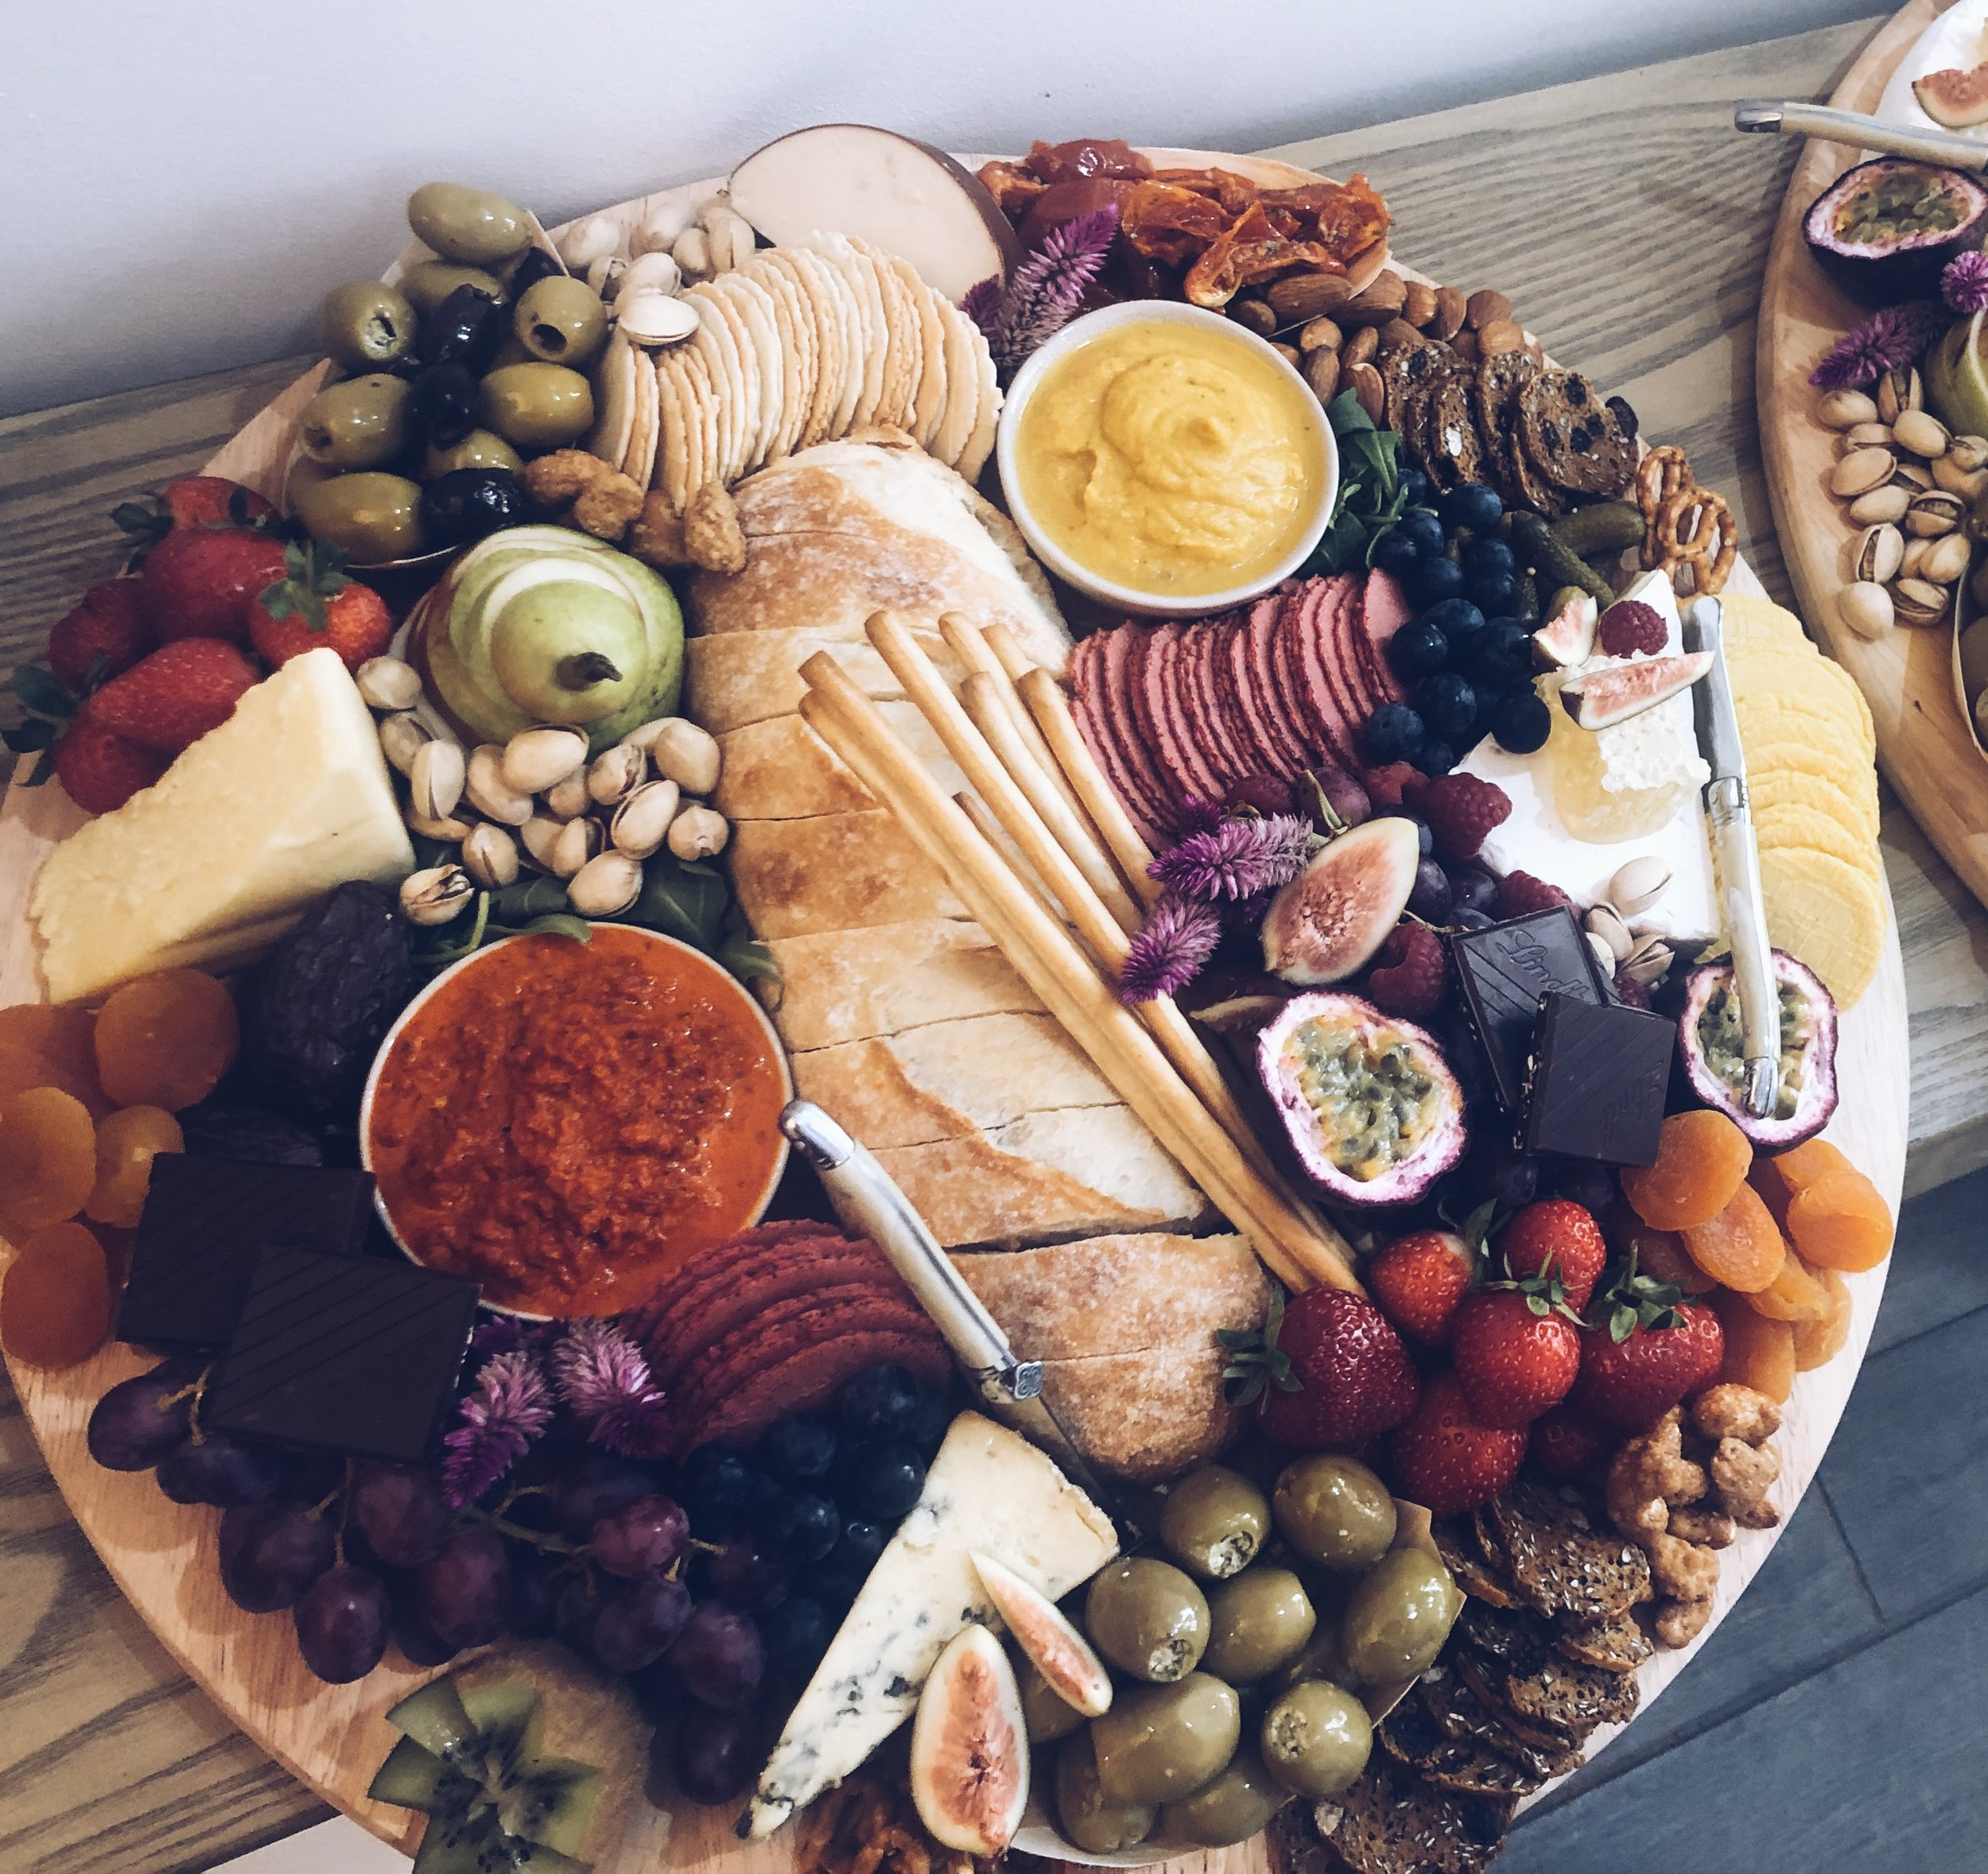 Single Scatter - Having girlfriends and freaking out your platter isn't going to be on point? Don't worry, we have you covered!$160 - perfect for approximately 6 - 8 peopleSet on a 400mm round board and styled with bowls and cheese knives. Comes with a serving pack of napkins.